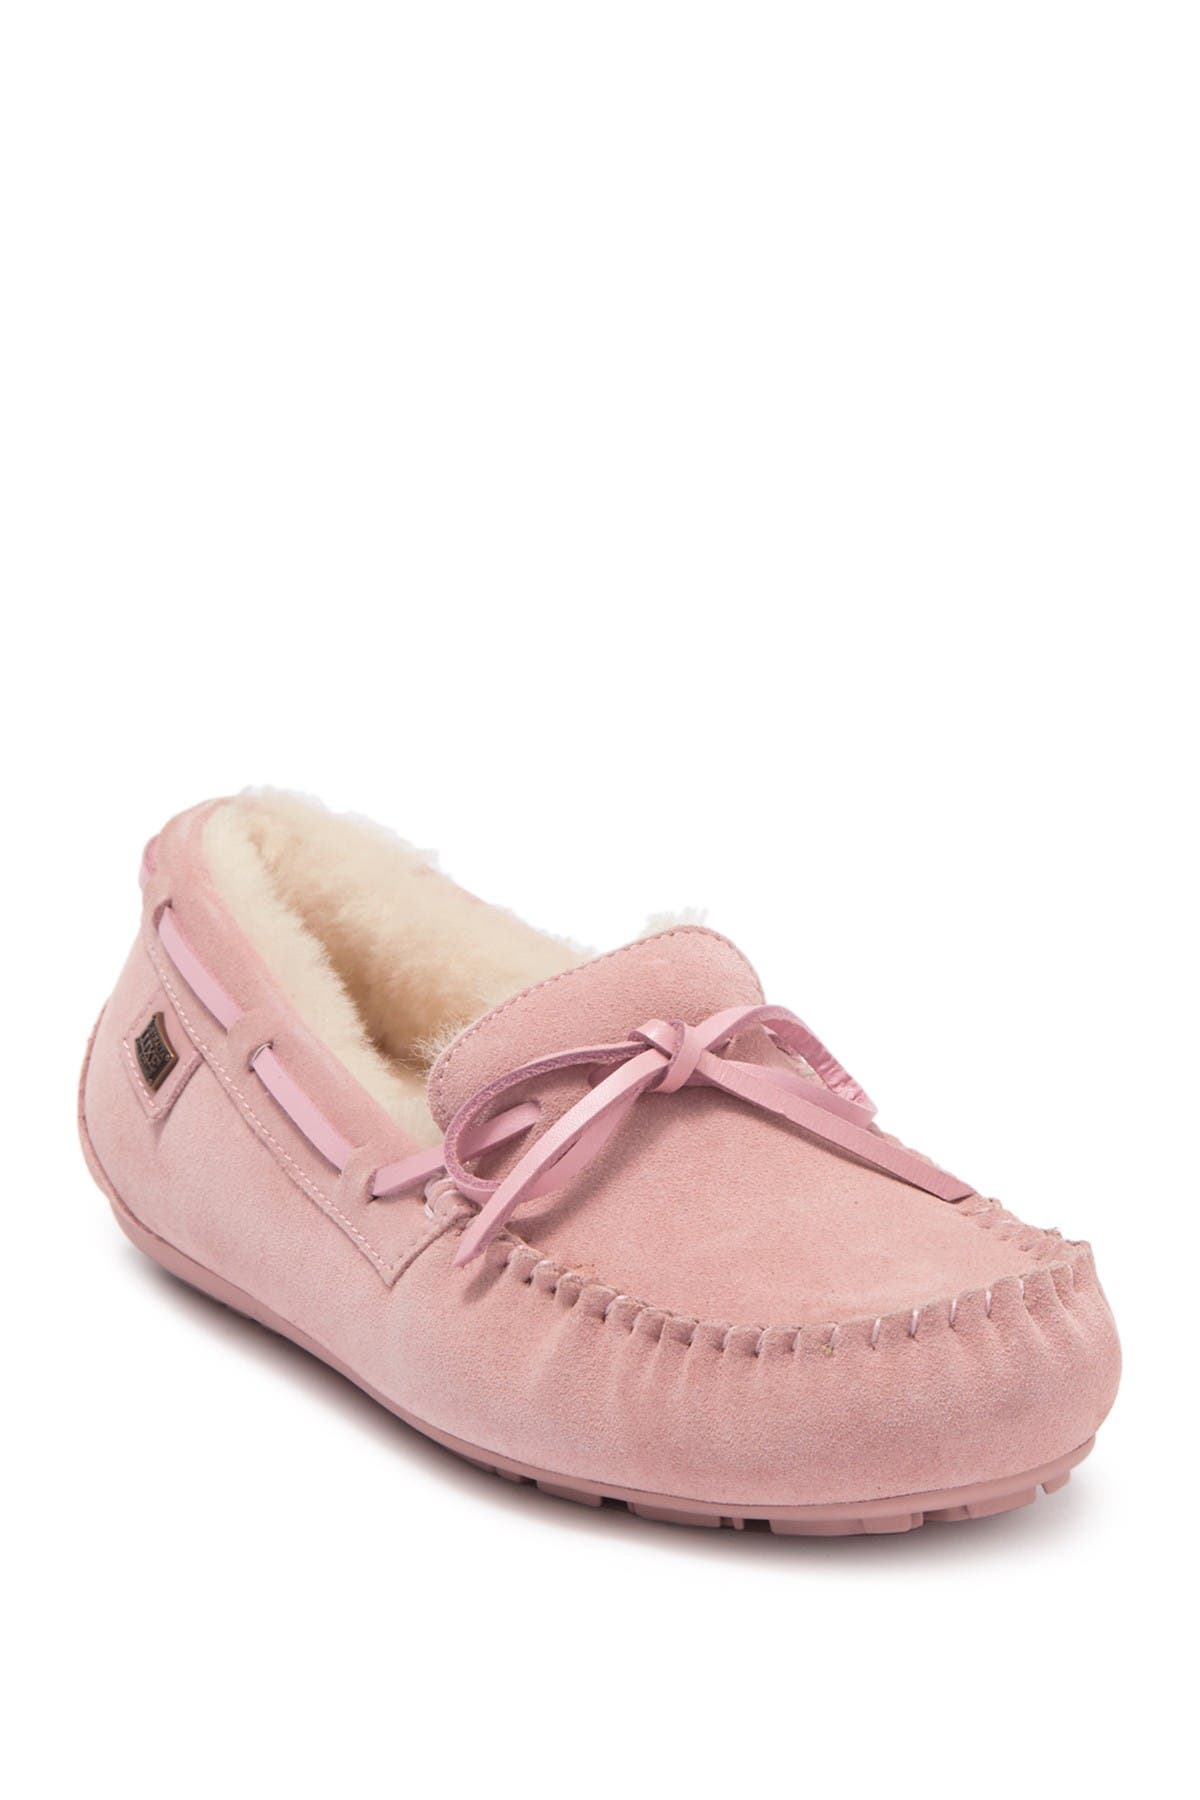 Image of Australia Luxe Collective Prost Genuine Shearling Moccasin